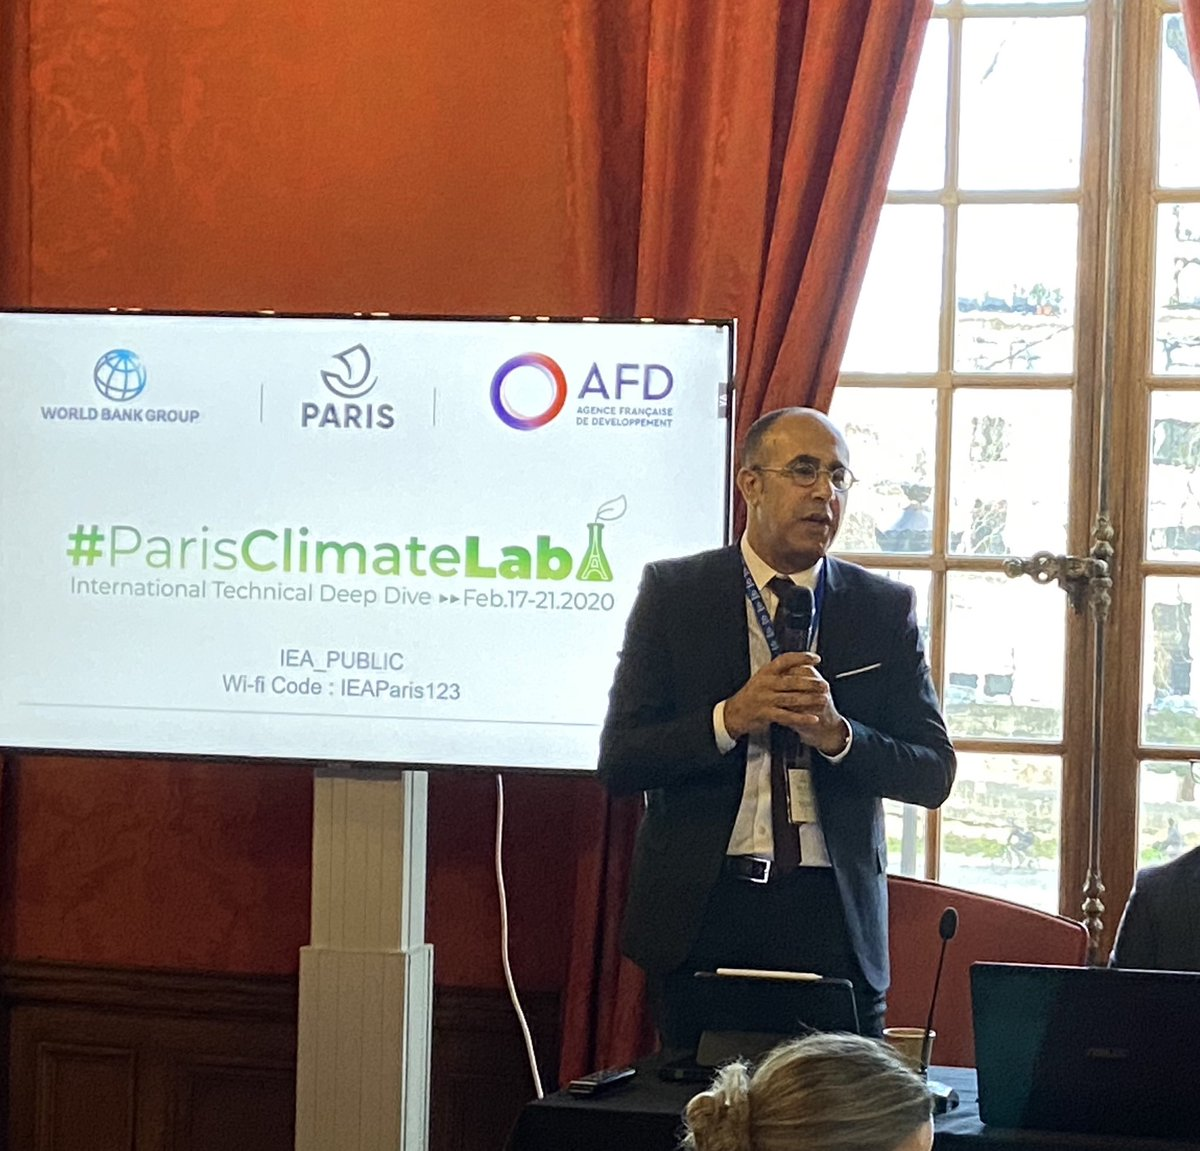 @SamehNWahba Challenges of #ClimateChange require shared action and solutions; cities can learn from each other @Paris @WBG_Cities #ParisClimateLab